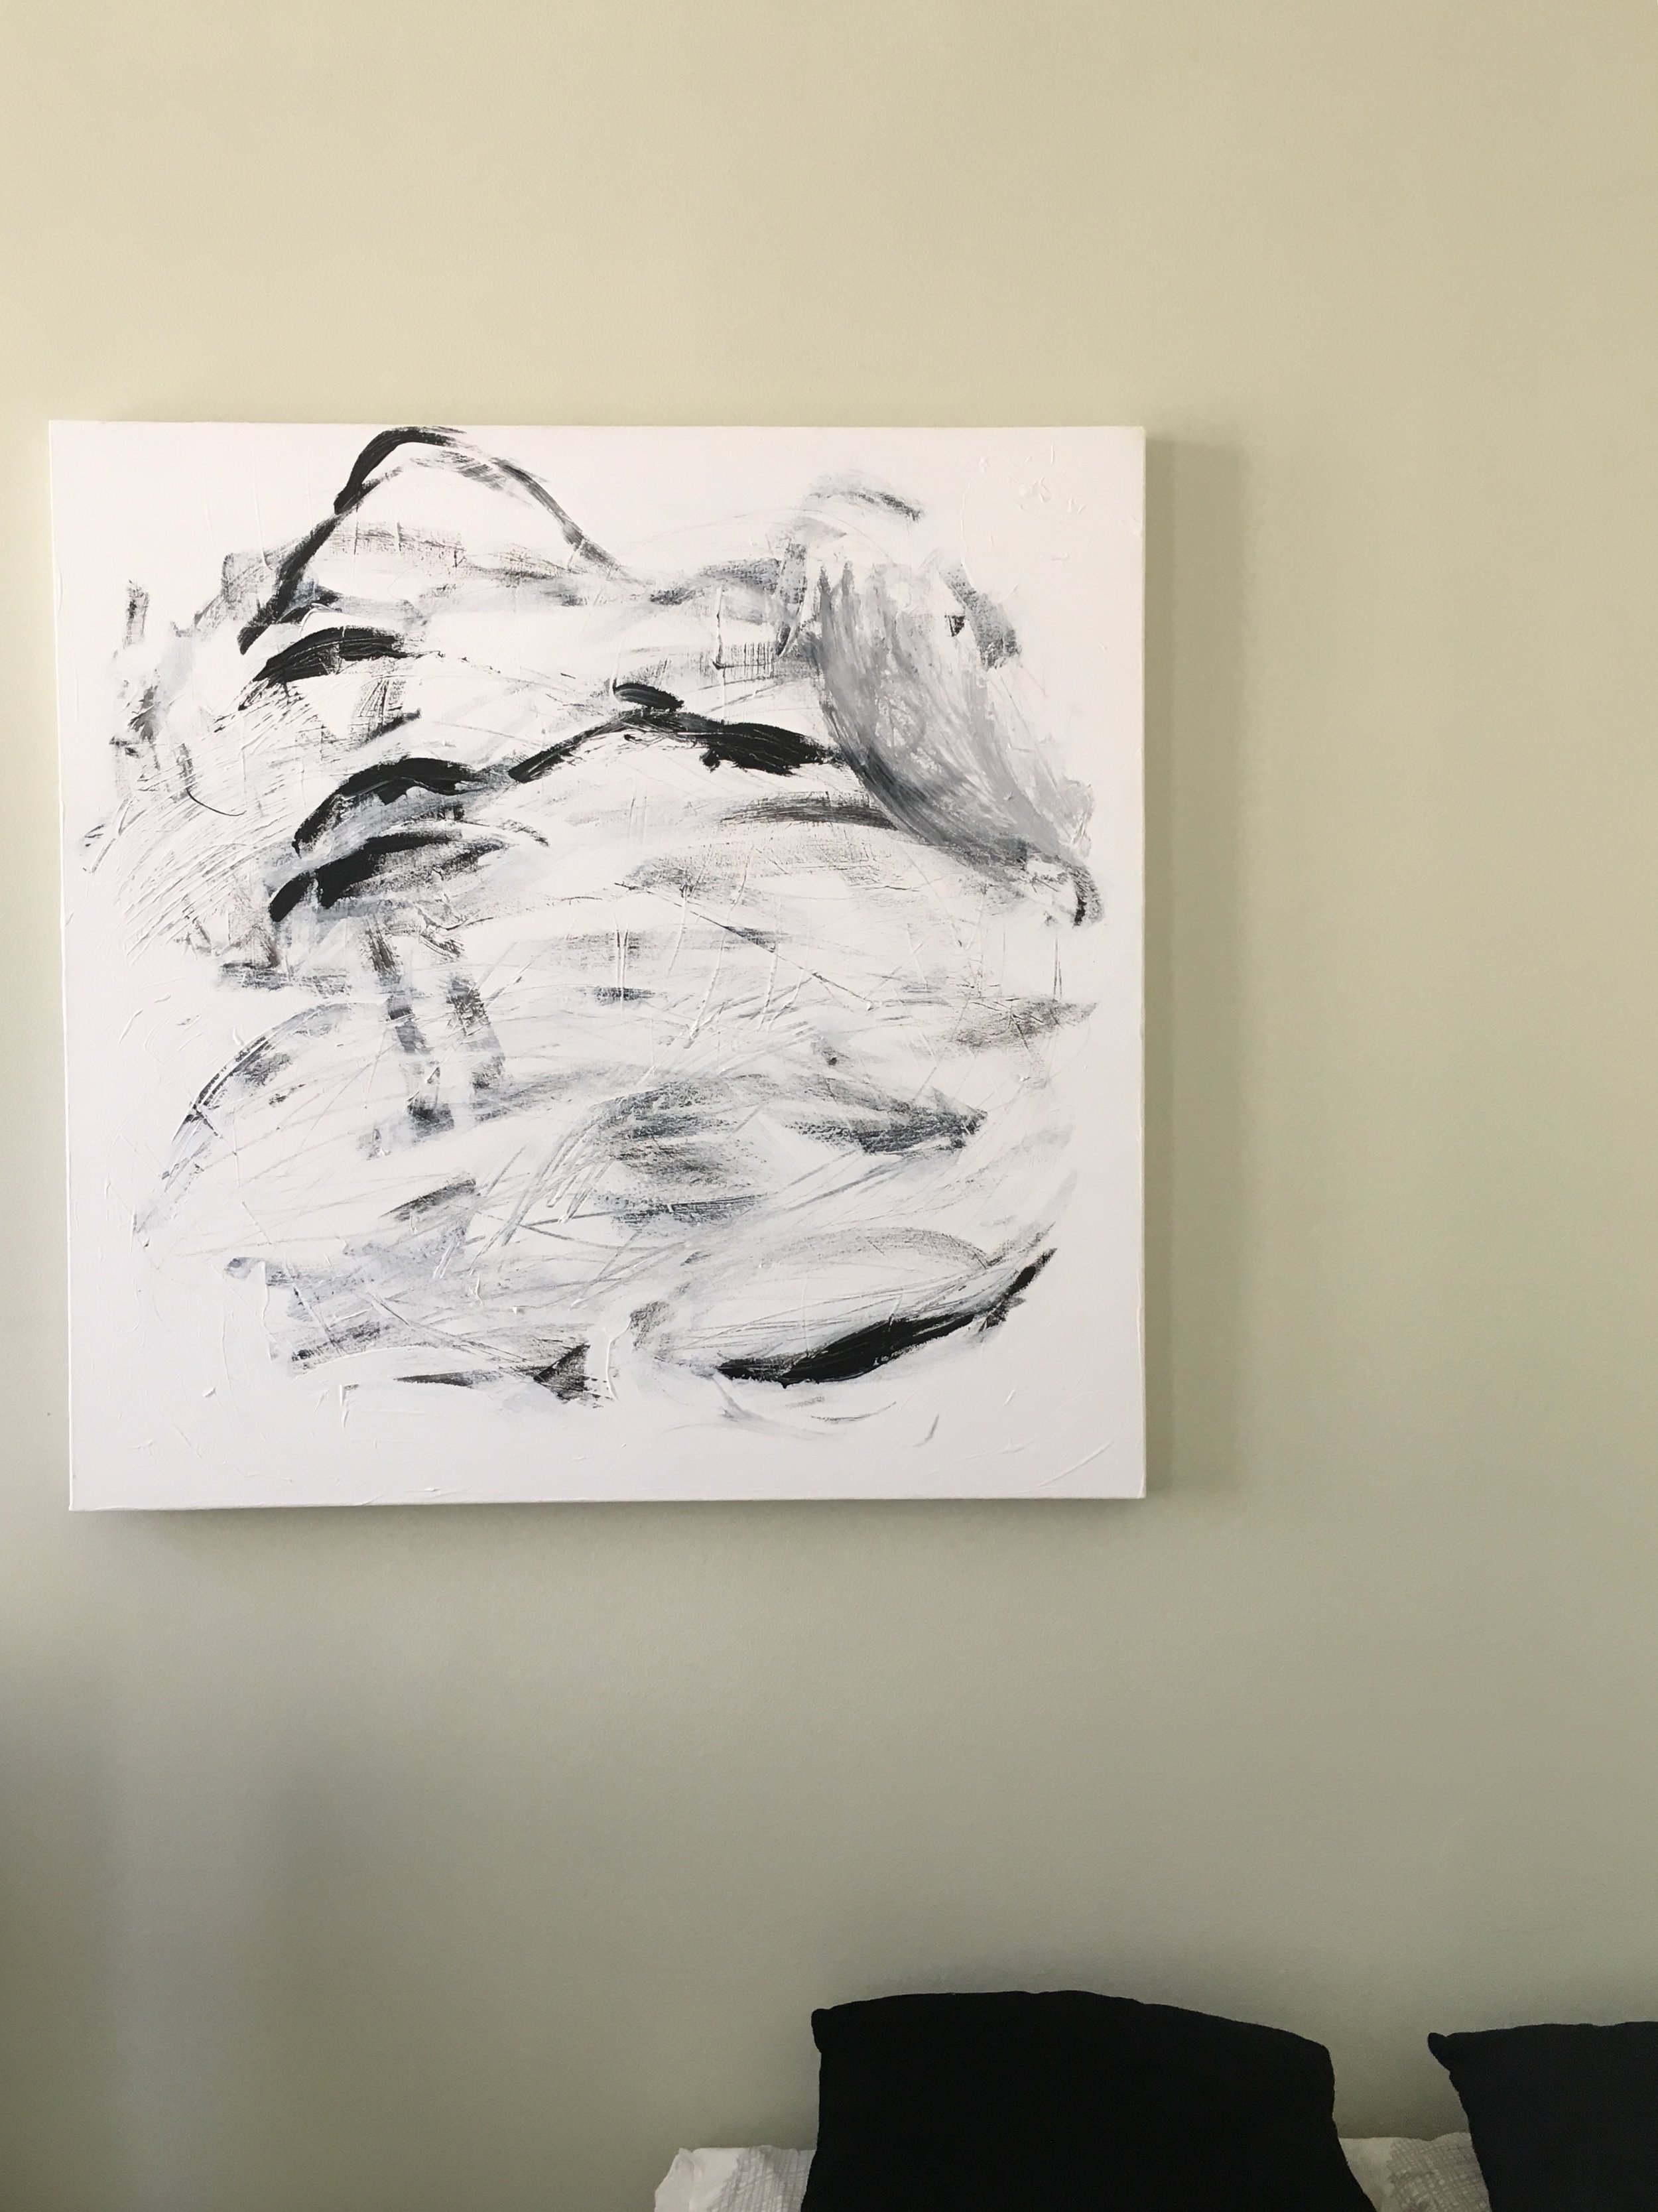 STREAM | 003, acrylic on canvas, 90 x 90 cm, SOLD  My painting in new home - & happy new owner!